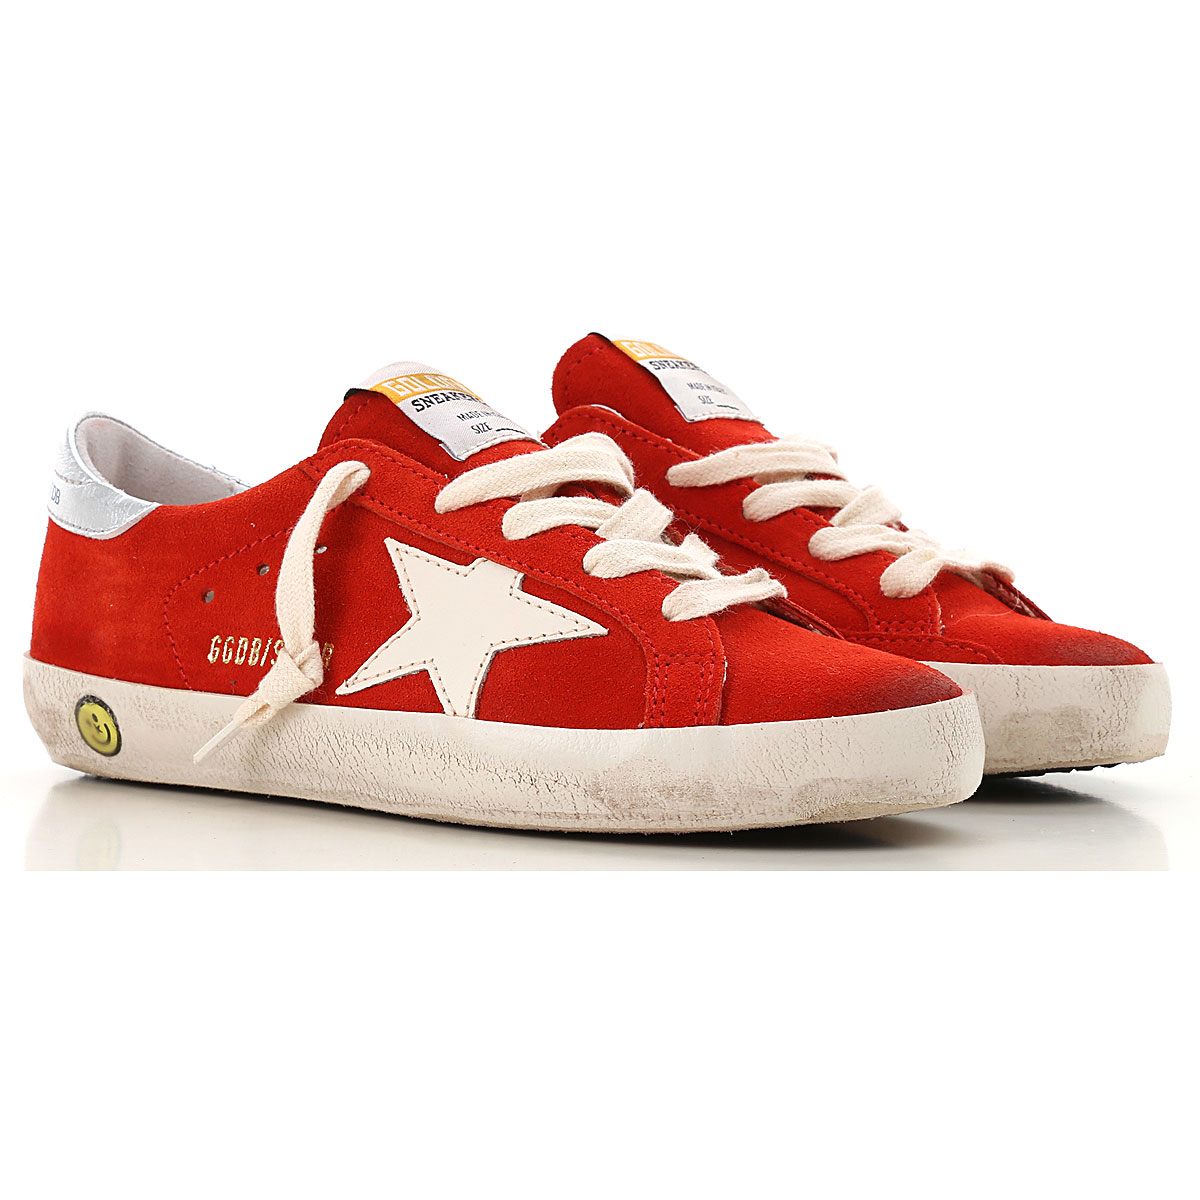 Image of Golden Goose Sneakers, Red, Suede leather, 2017, 29 30 31 32 33 34 35